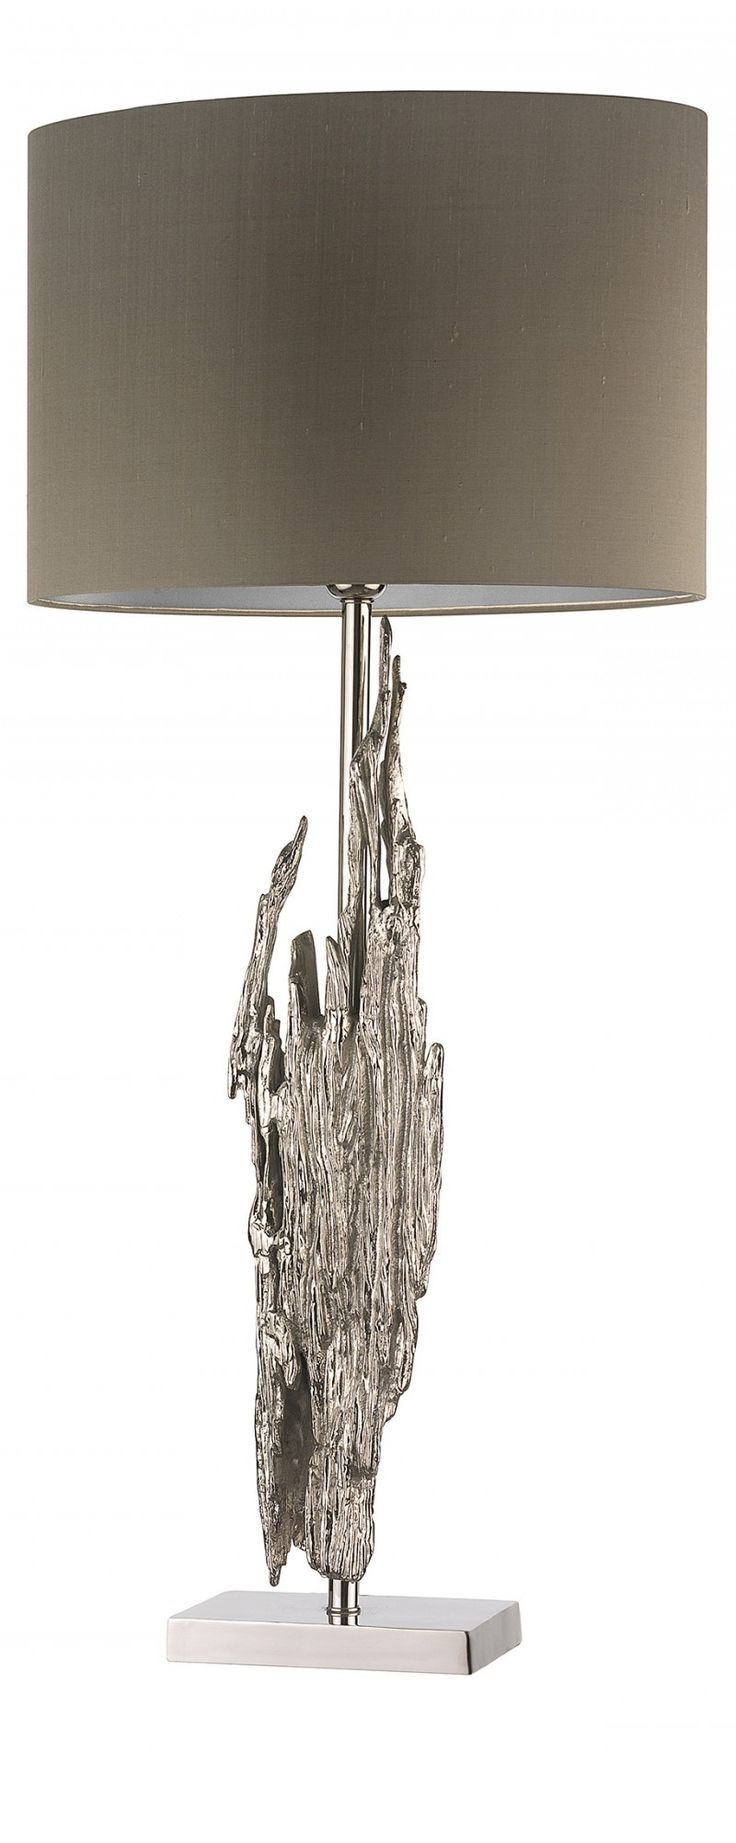 "for more beautiful table lamp inspirations use search box term "" table lamp"" @ click link: InStyle-Decor.com"